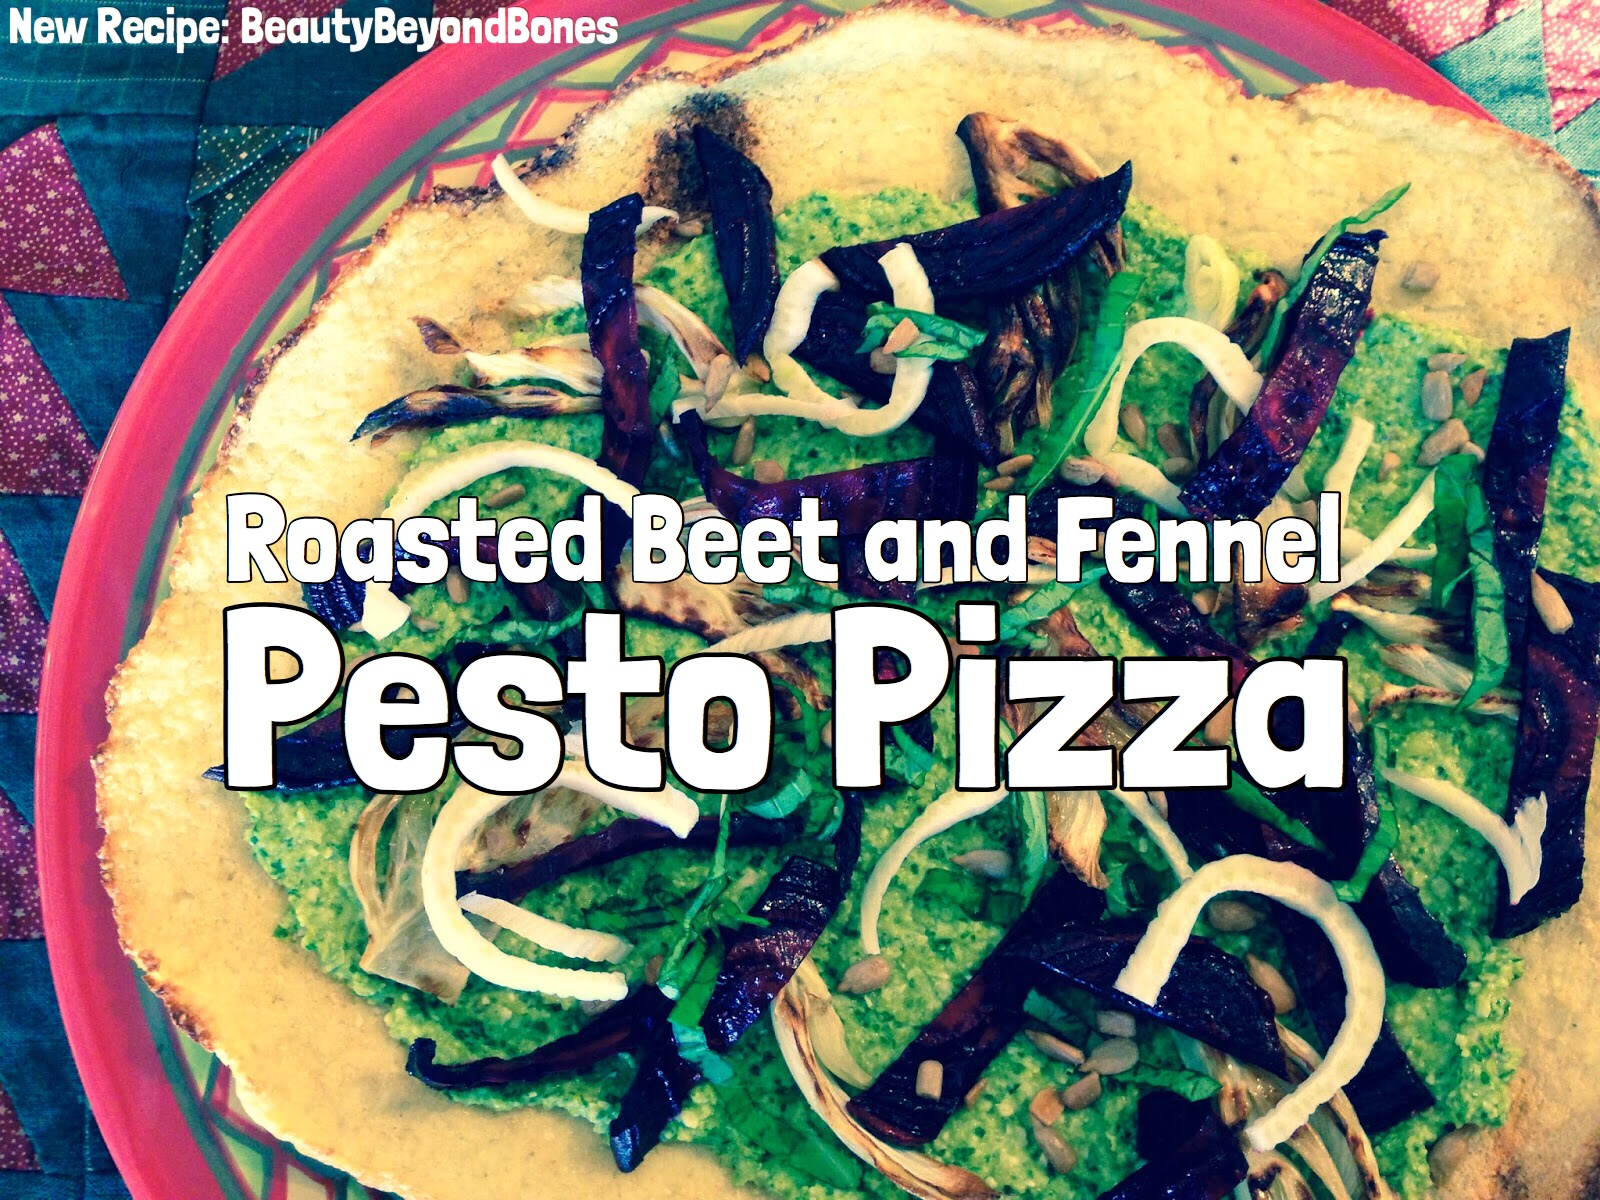 Roasted Beet and Fennel Pesto Pizza